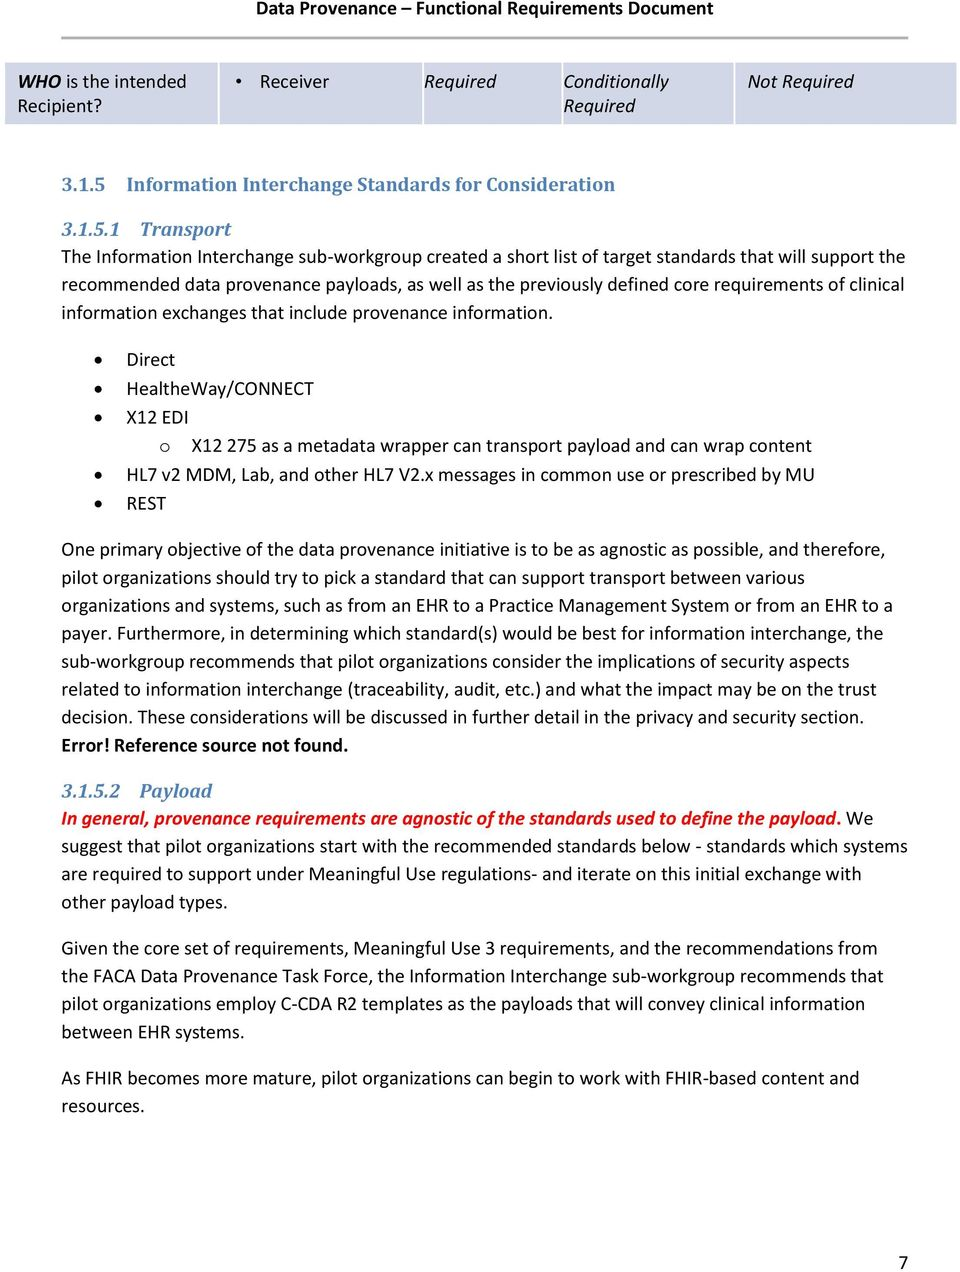 1 Transport The Information Interchange sub-workgroup created a short list of target standards that will support the recommended data provenance payloads, as well as the previously defined core